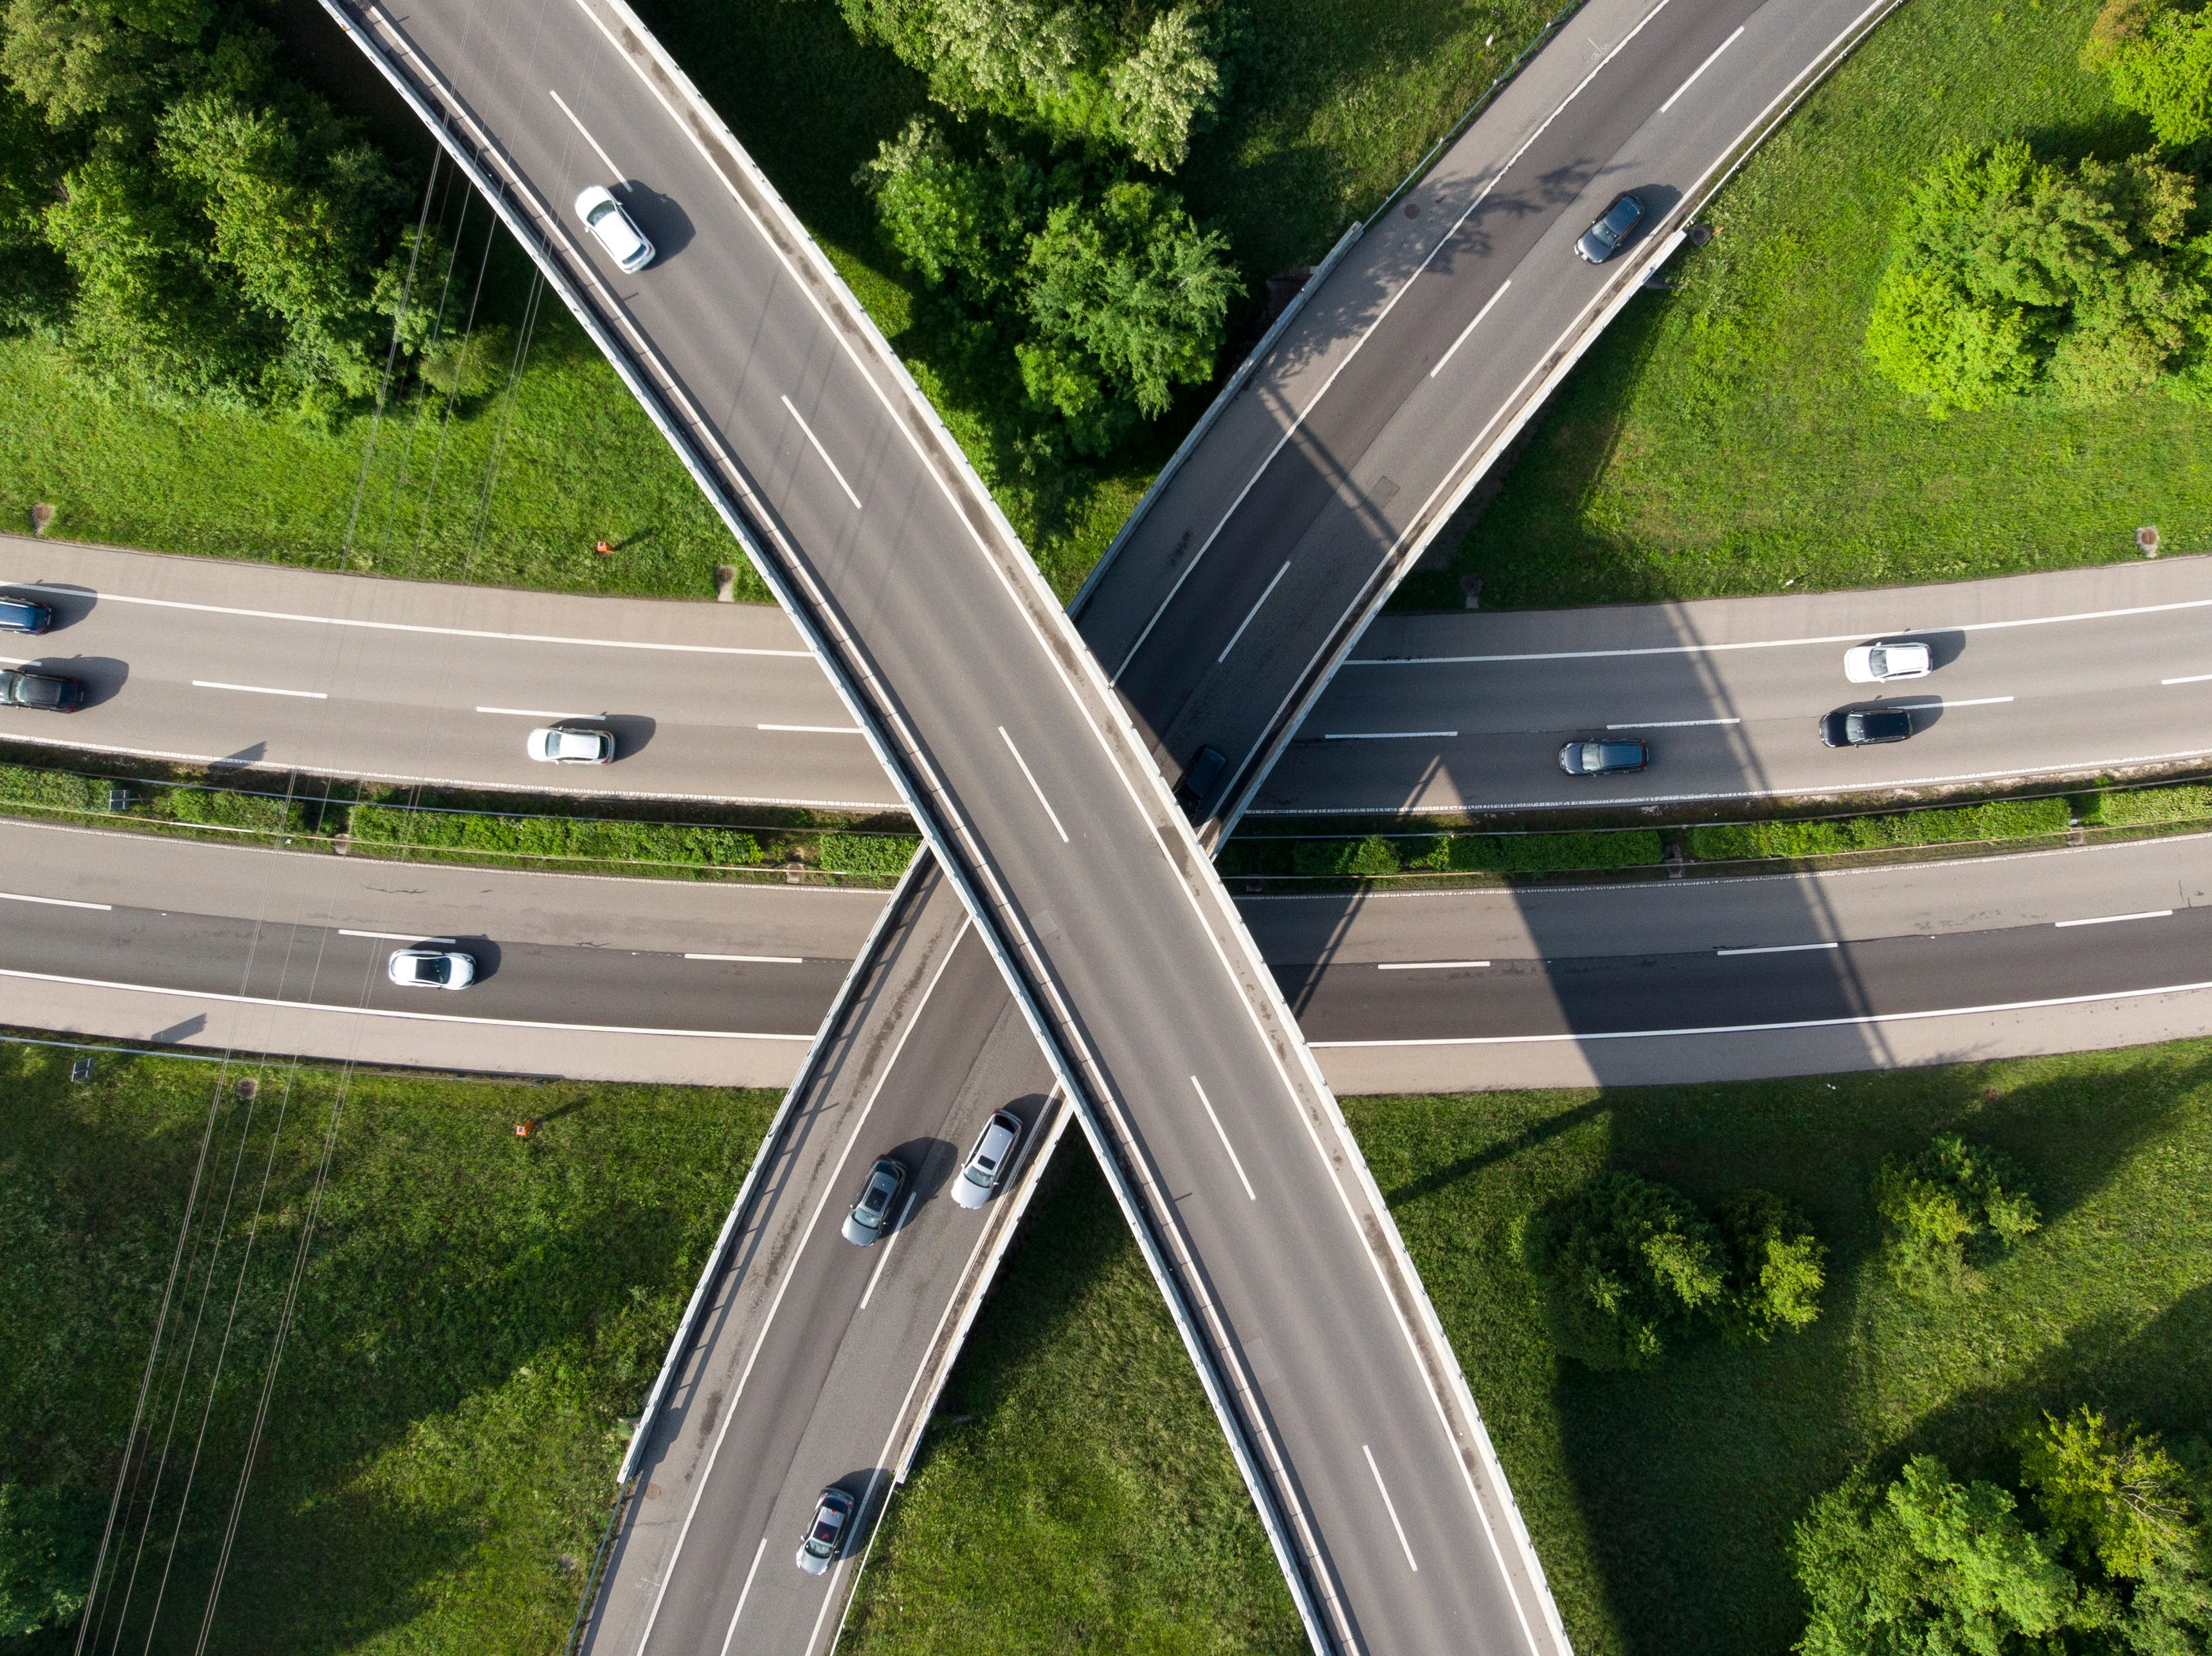 May 17, 2018: An image taken with a drone shows an aerial view of several cars and trucks driving on highway A1 interchange Ecublens-Crissier, in Ecublens, Switzerland.